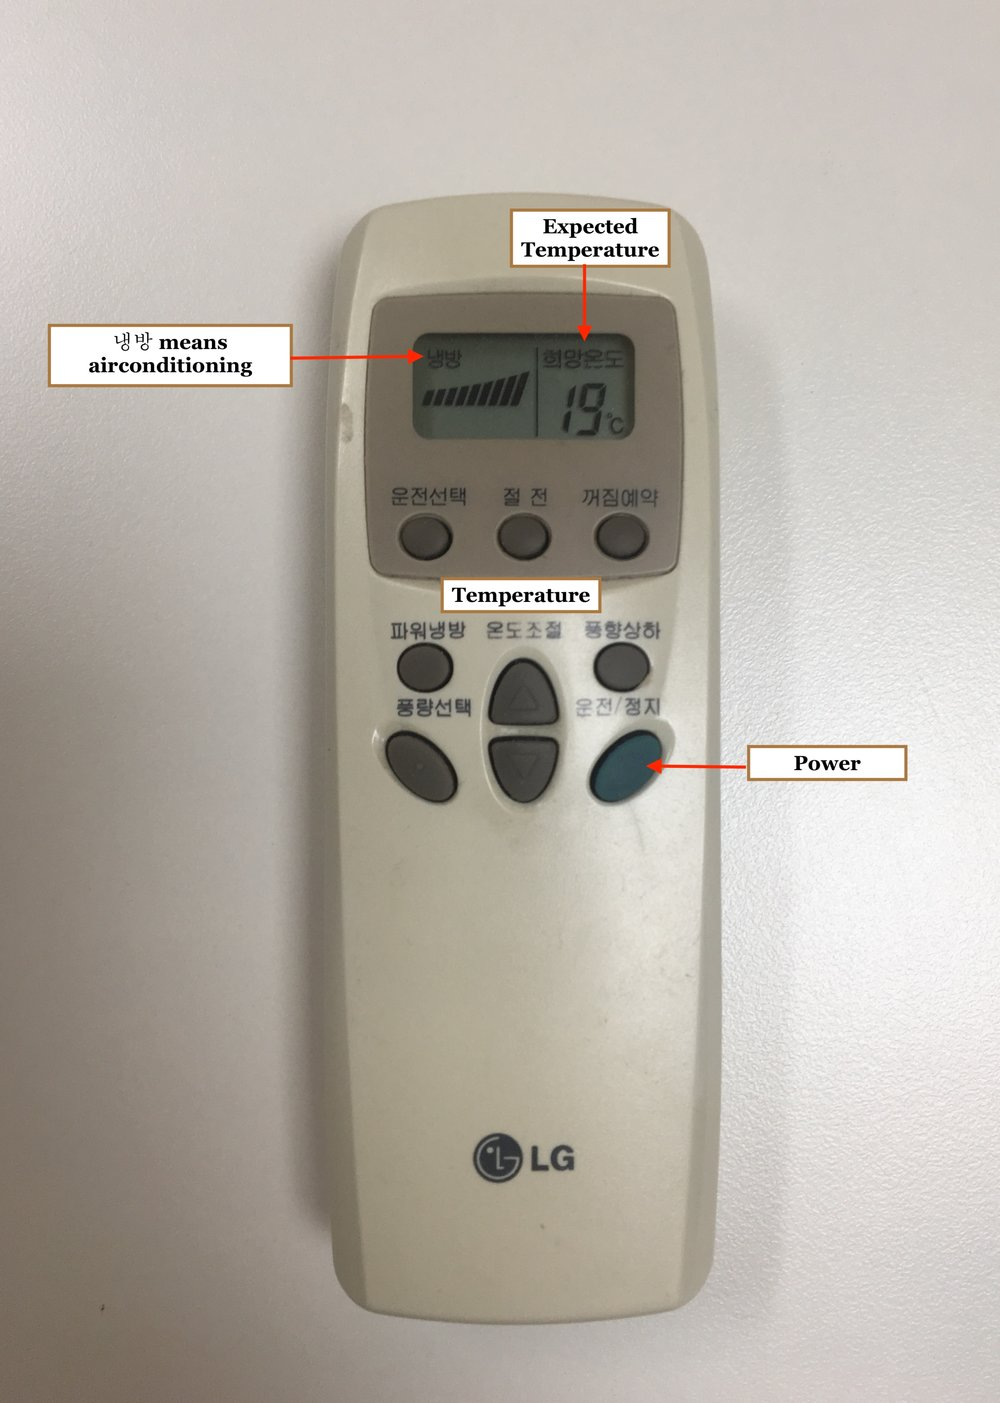 How to use airconditioner remote - 전원 is POWER | 냉방is airconditioningIF the room is not cool enough, please check if it's on 냉방. You can control that button with 운전선택 on the very top left. Also, you can control temperature by arrows in the middle.* Please make sure that the window to the balcony should be closed. Also, please make sure to open the window outside the balcony.